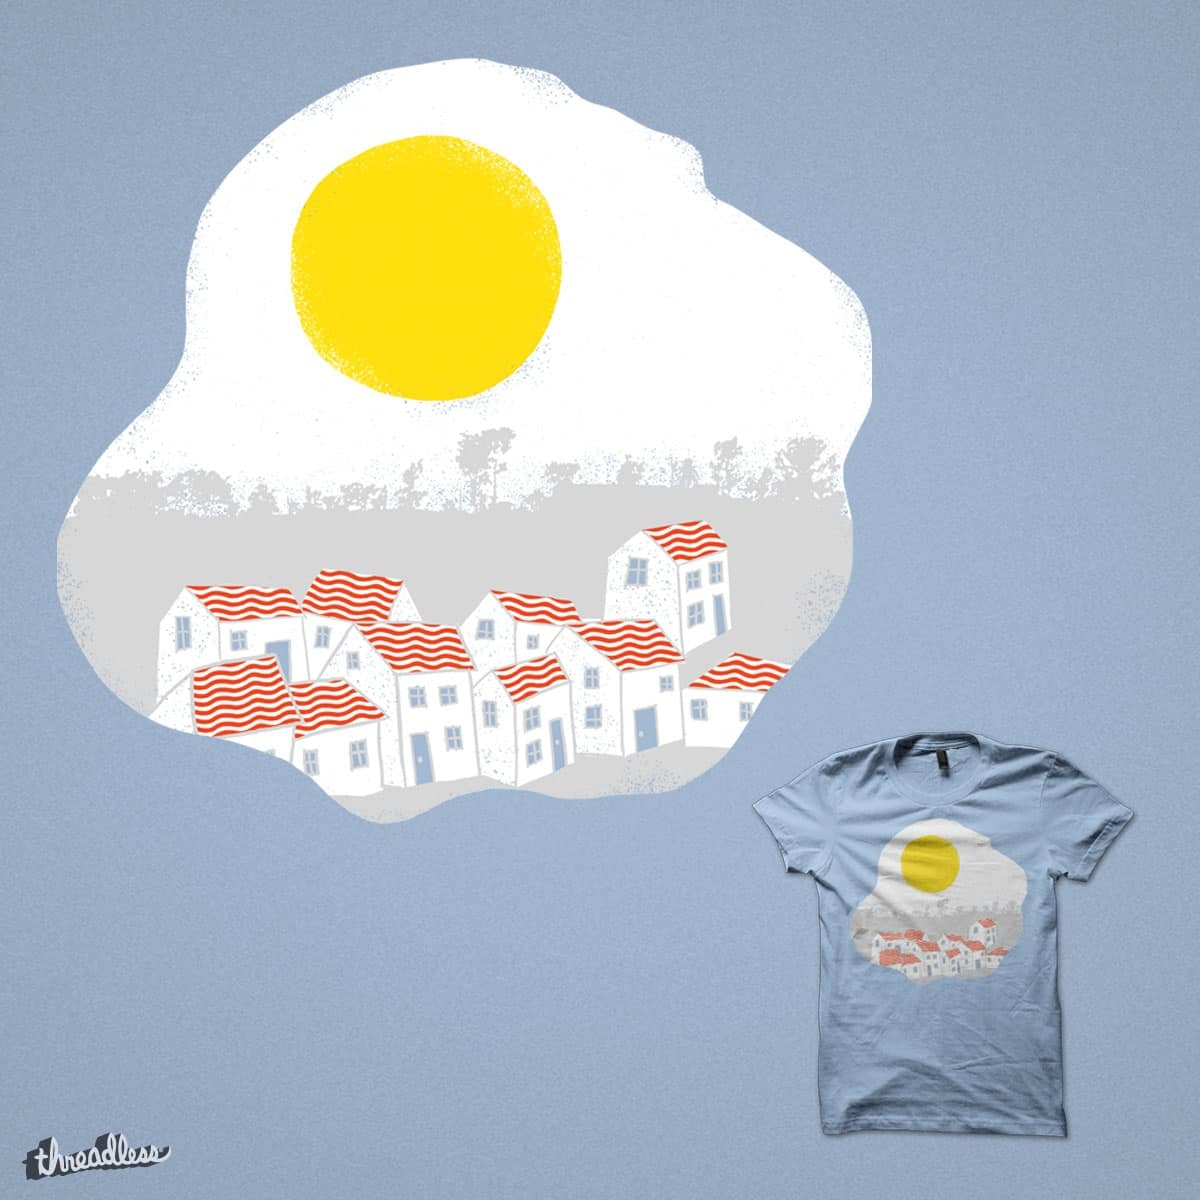 Breakfast Day by eikwox on Threadless